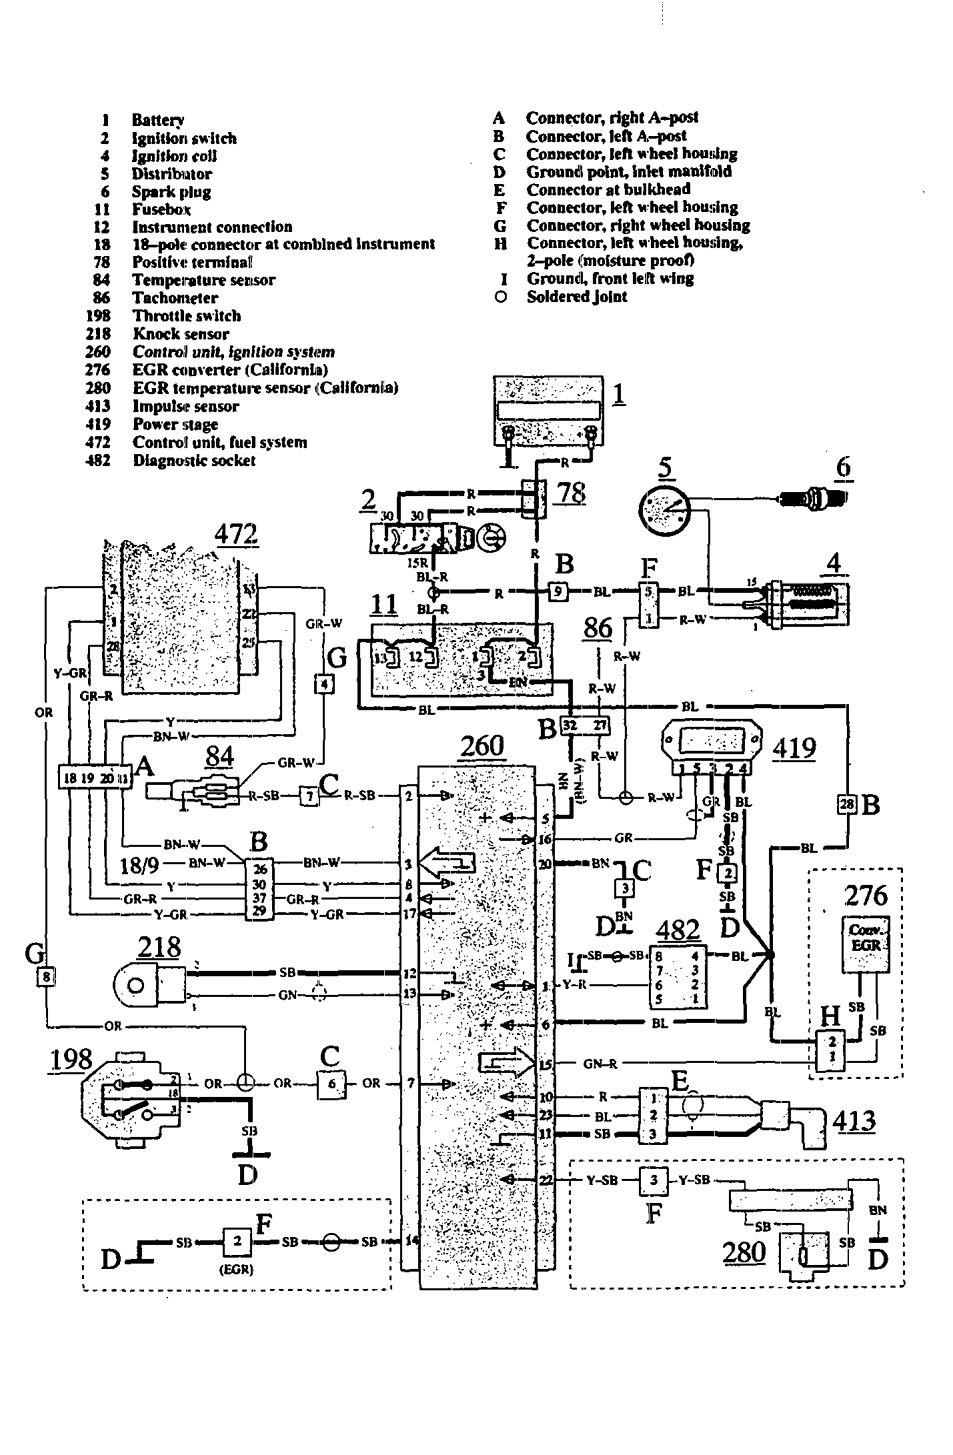 volvo aq131 distributor wiring diagram best wiring library related volvo aq131 distributor wiring diagram